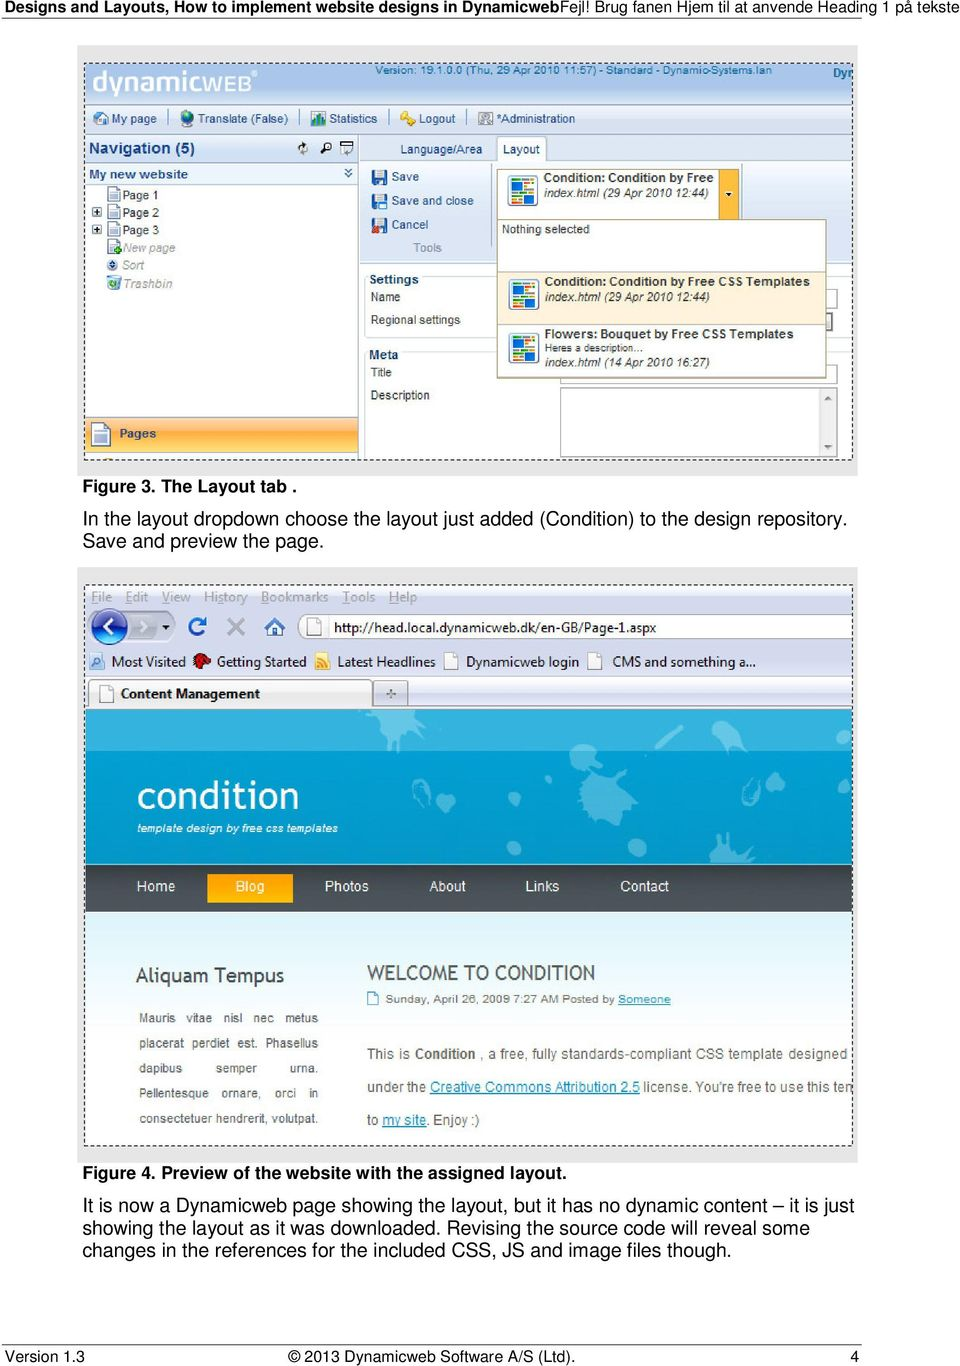 It is now a Dynamicweb page showing the layout, but it has no dynamic content it is just showing the layout as it was